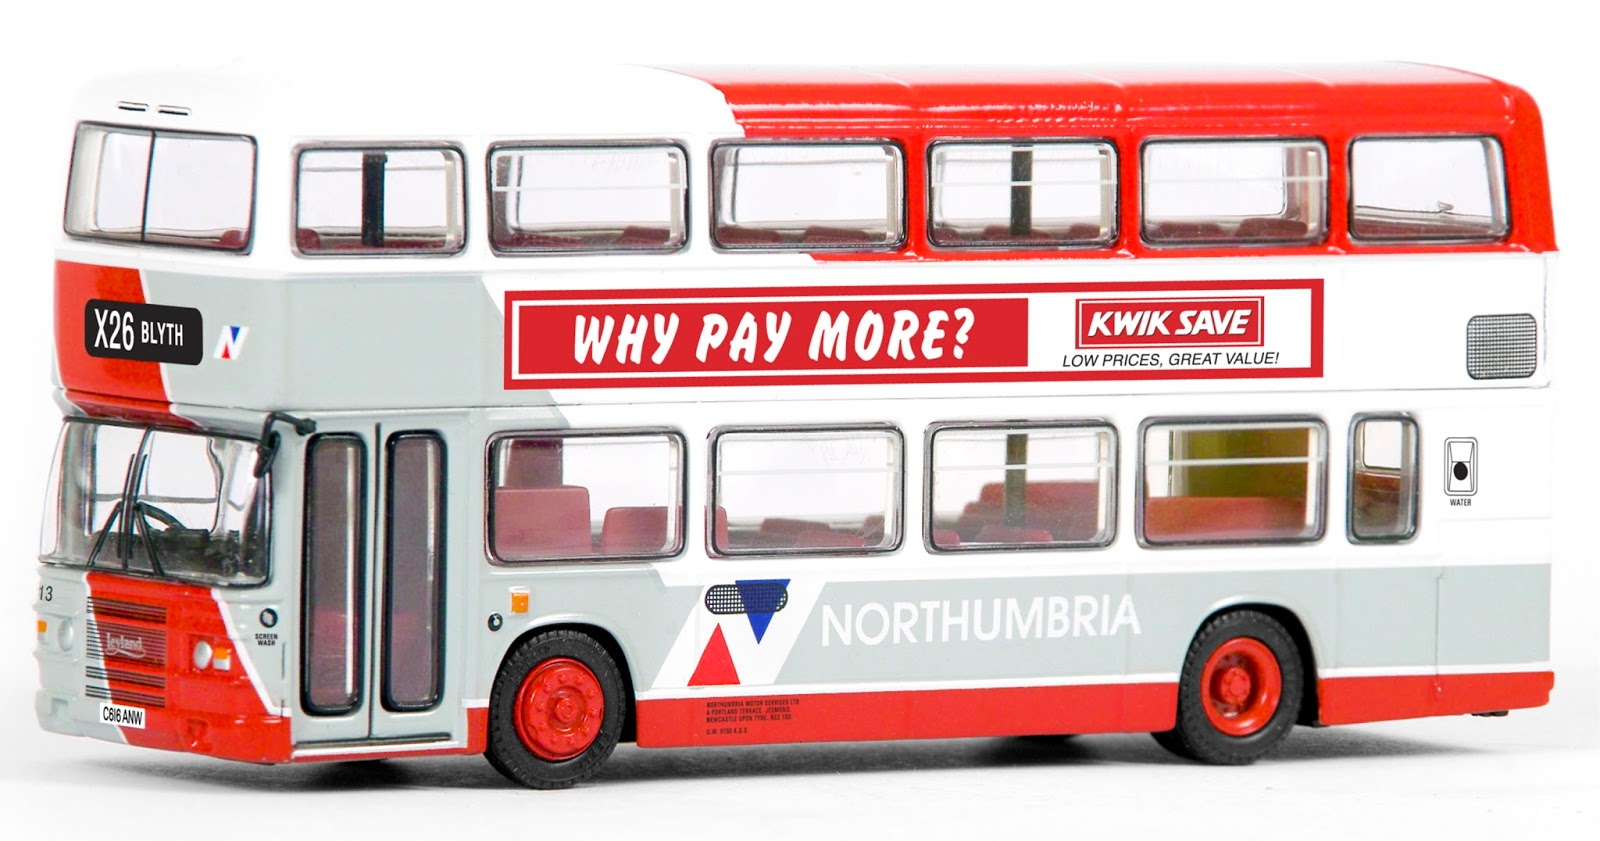 EFE 29632 - Leyland Olympian  - Northumbria This very distinctive livery makes a welcome return on our Leyland Olympian as buses from the North East are proving very collectable. Registered C616 ANW, fleet number 313 operates route X 26 to Blyth. RRP £32.50